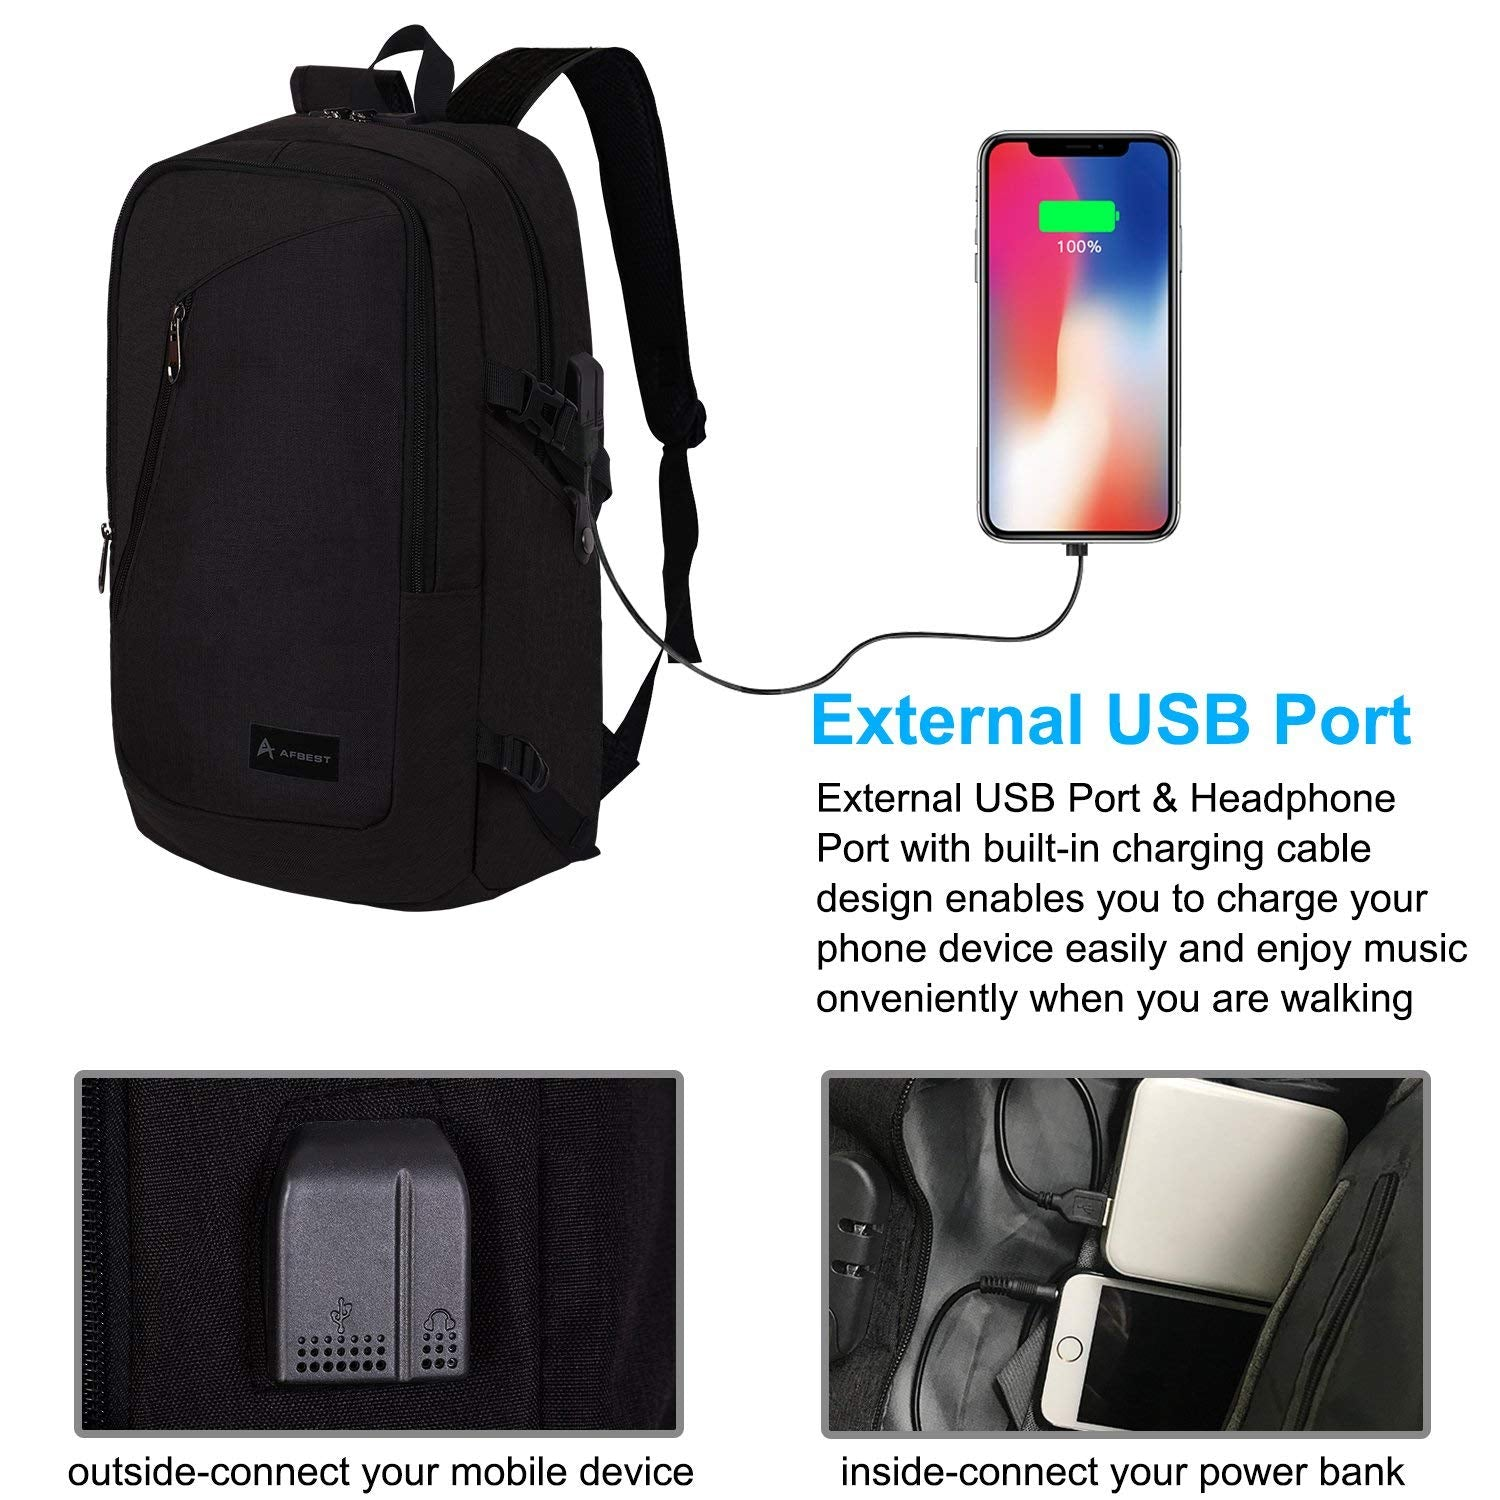 AFBEST Laptop Backpack,Business Anti Theft laptop Waterproof backpack with  USB Charging Port and Headphone Fits UNDER 17